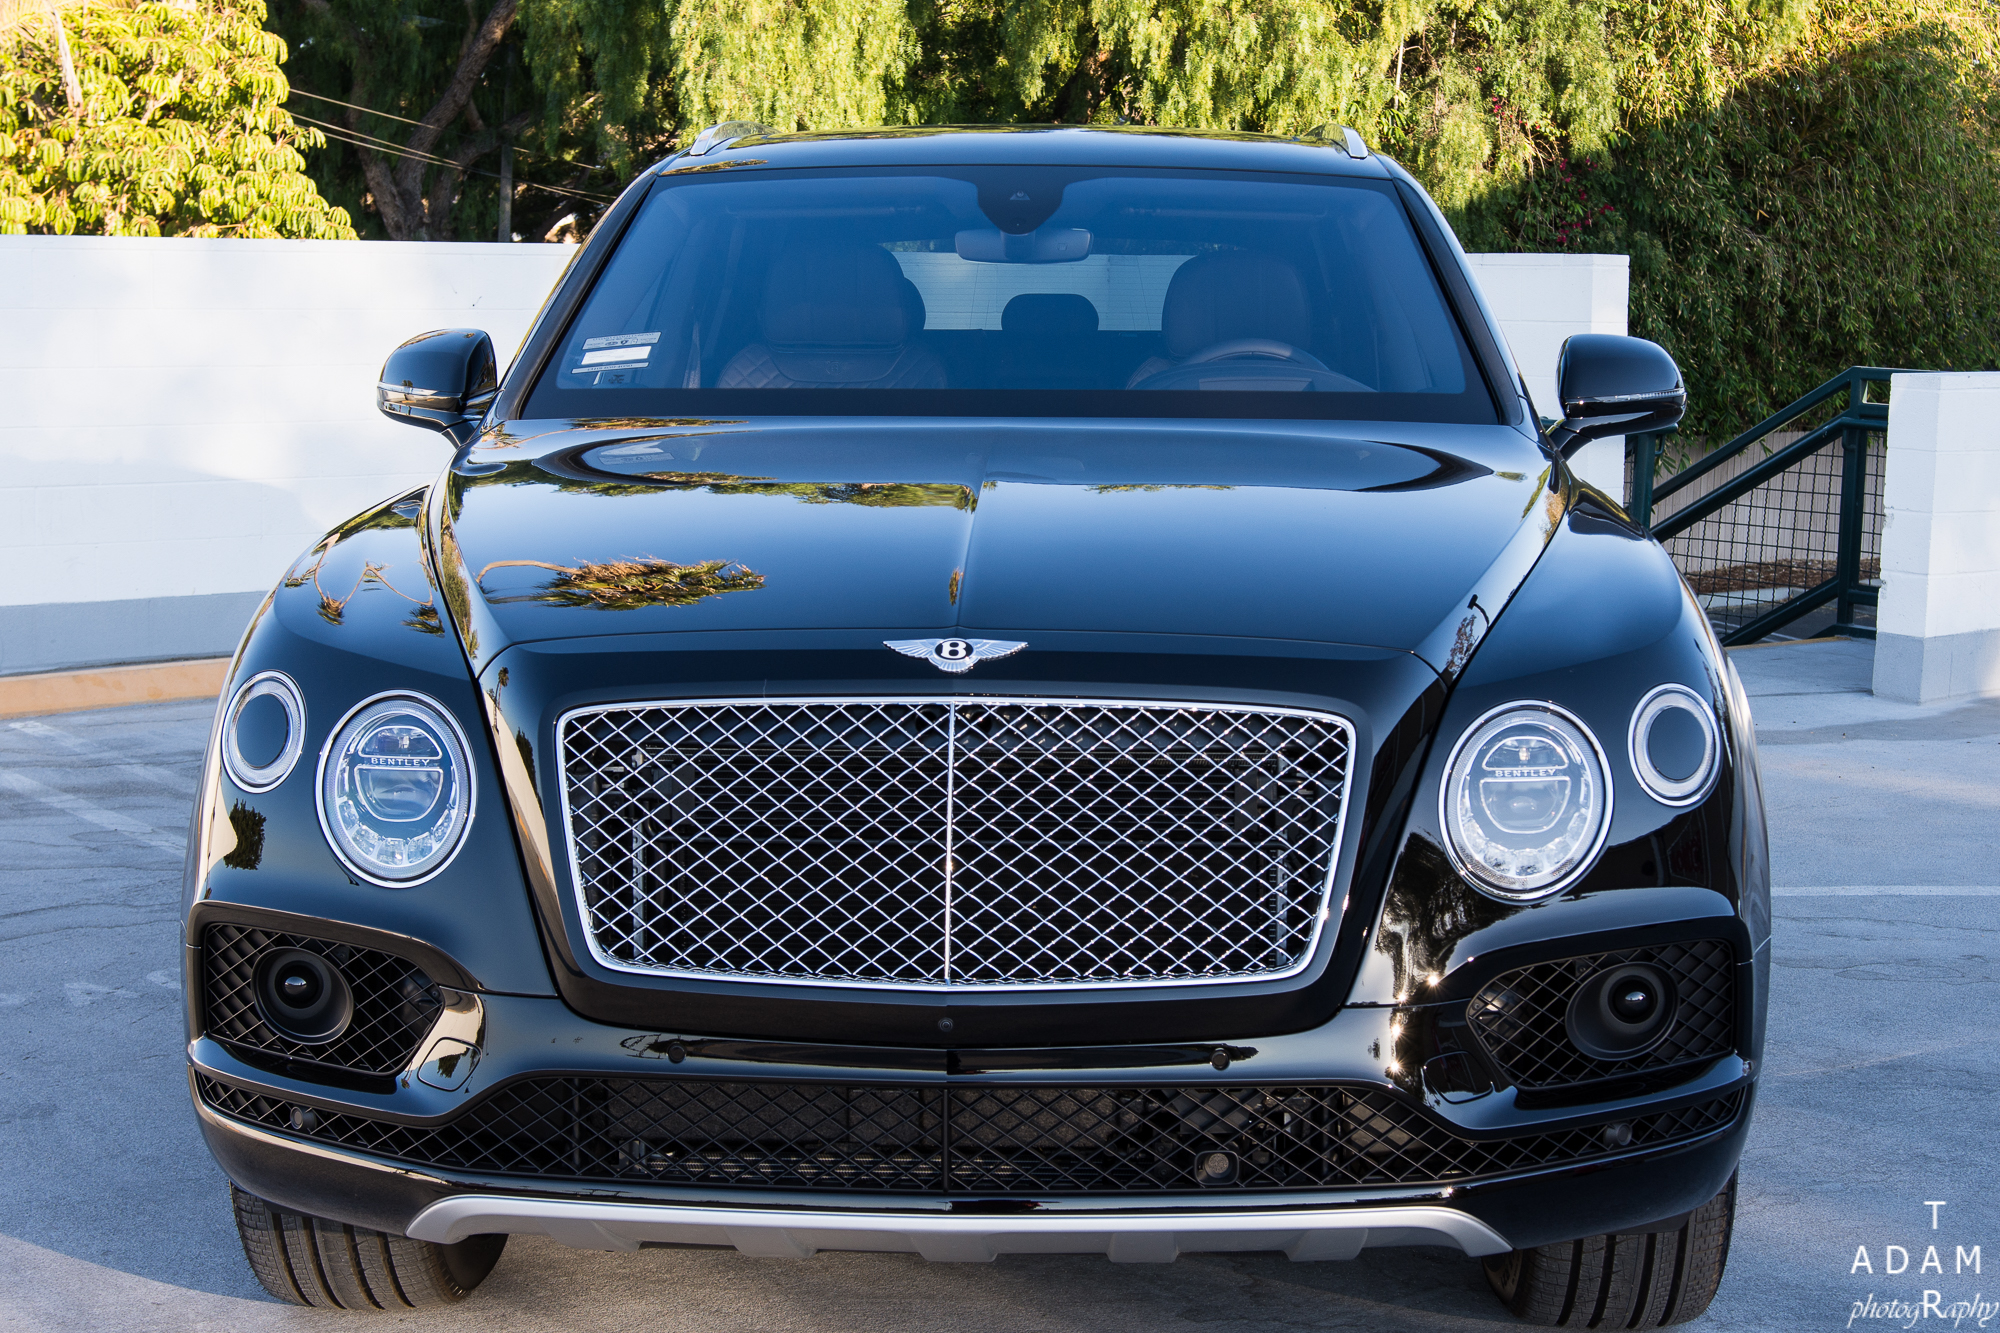 click here bentley cheap luxury car cars angeles rental image los sales unique of chicago awesome lovely il